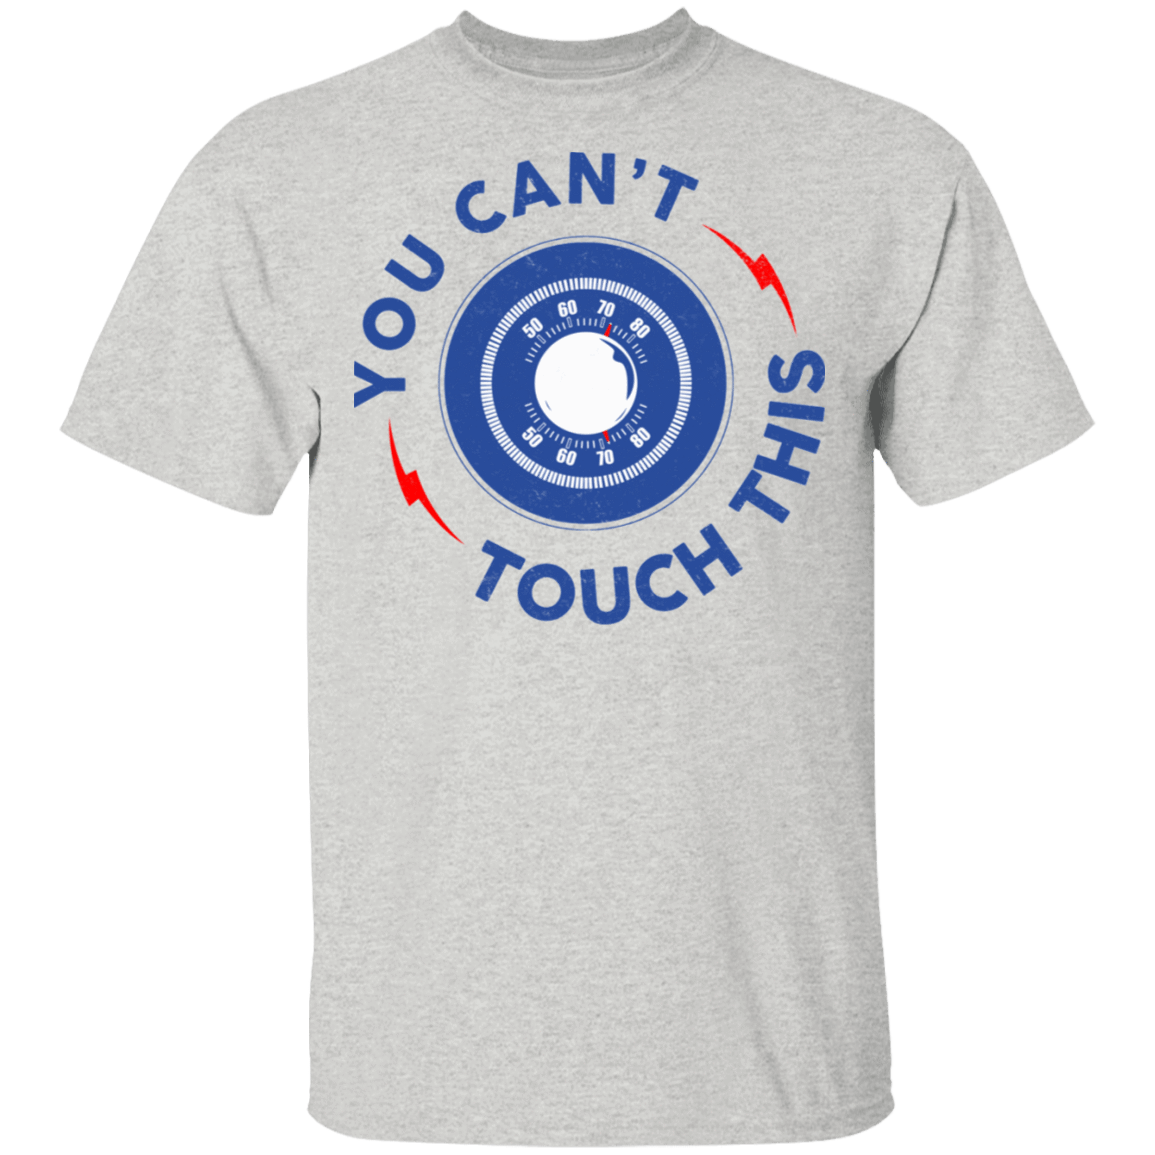 You Can't Touch This T-Shirts, Hoodies, Tank 22-2475-79999090-12568 - Tee Ript